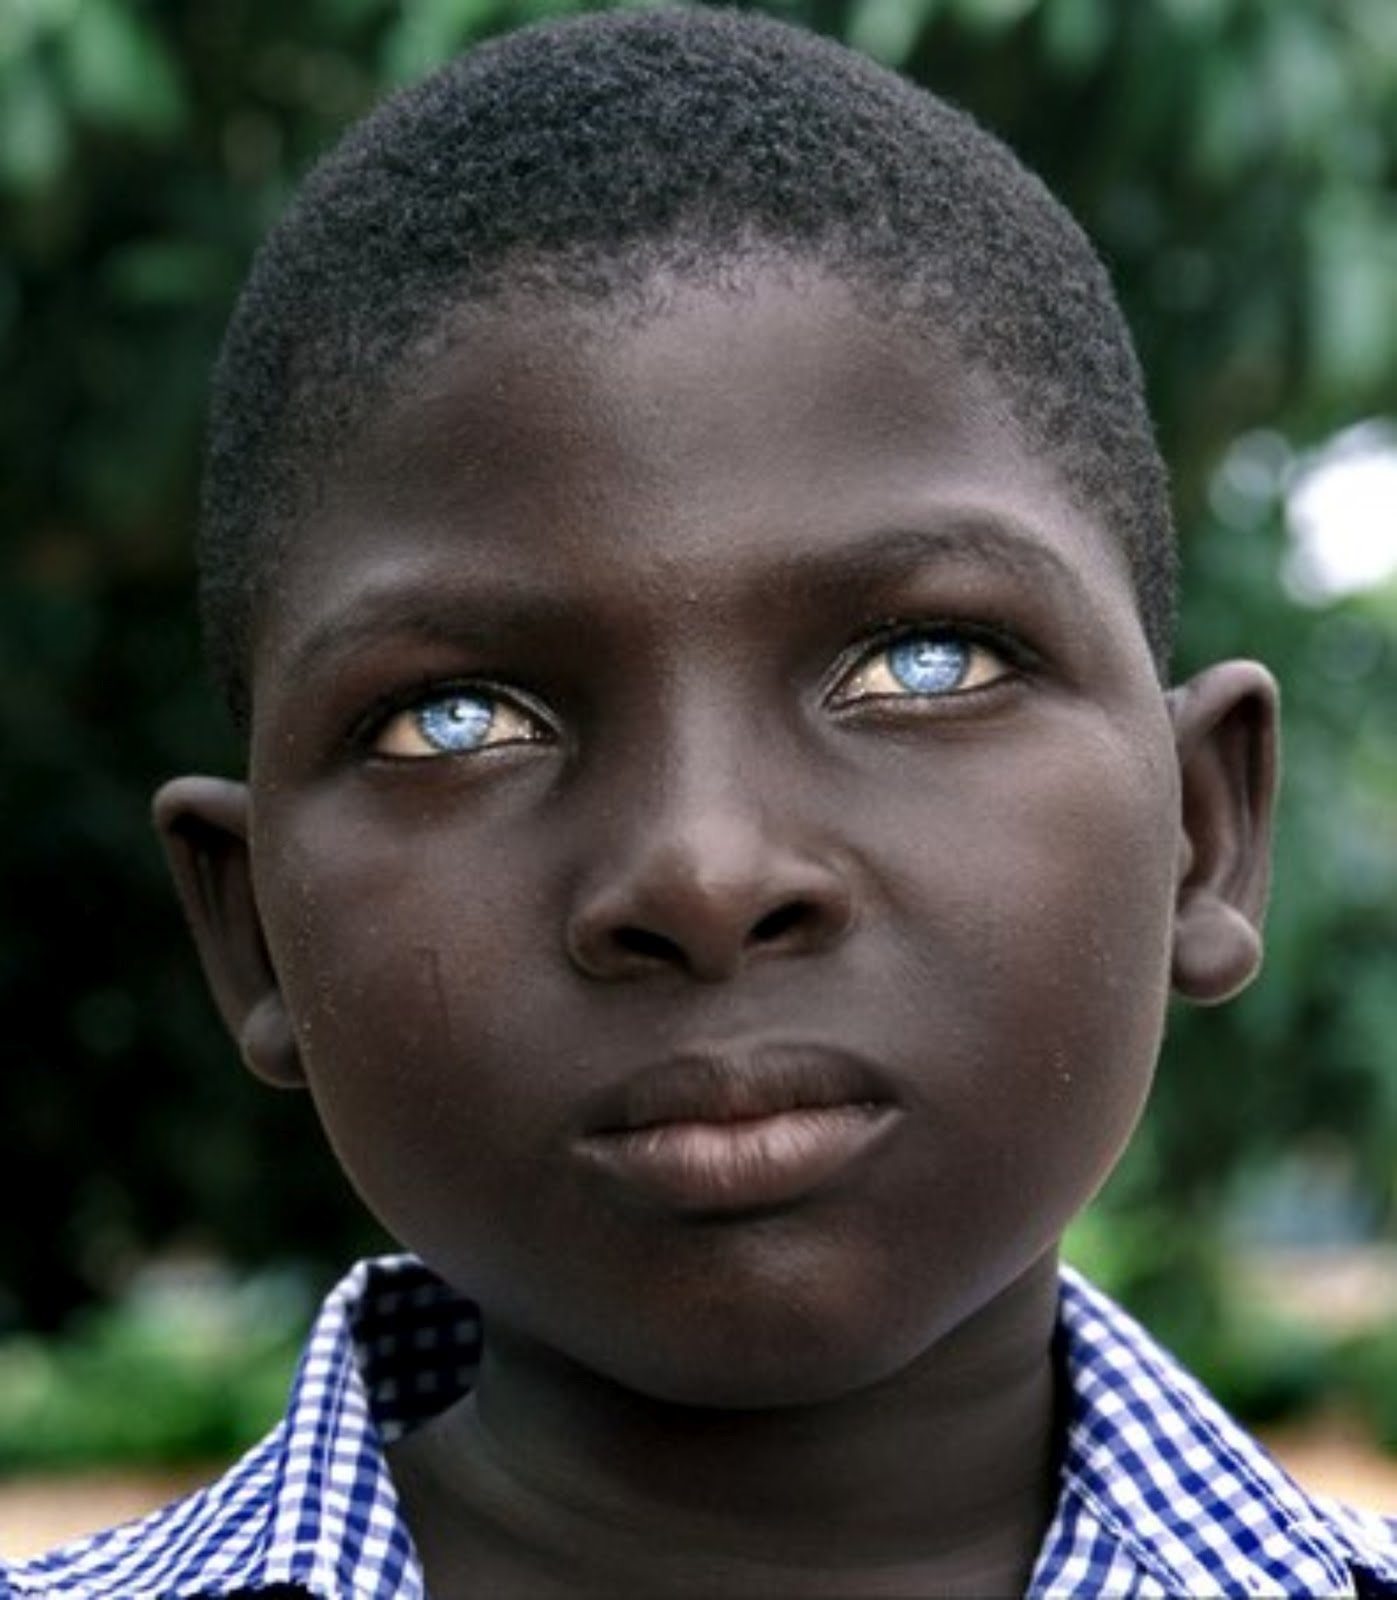 Black Person With Blue Eyes